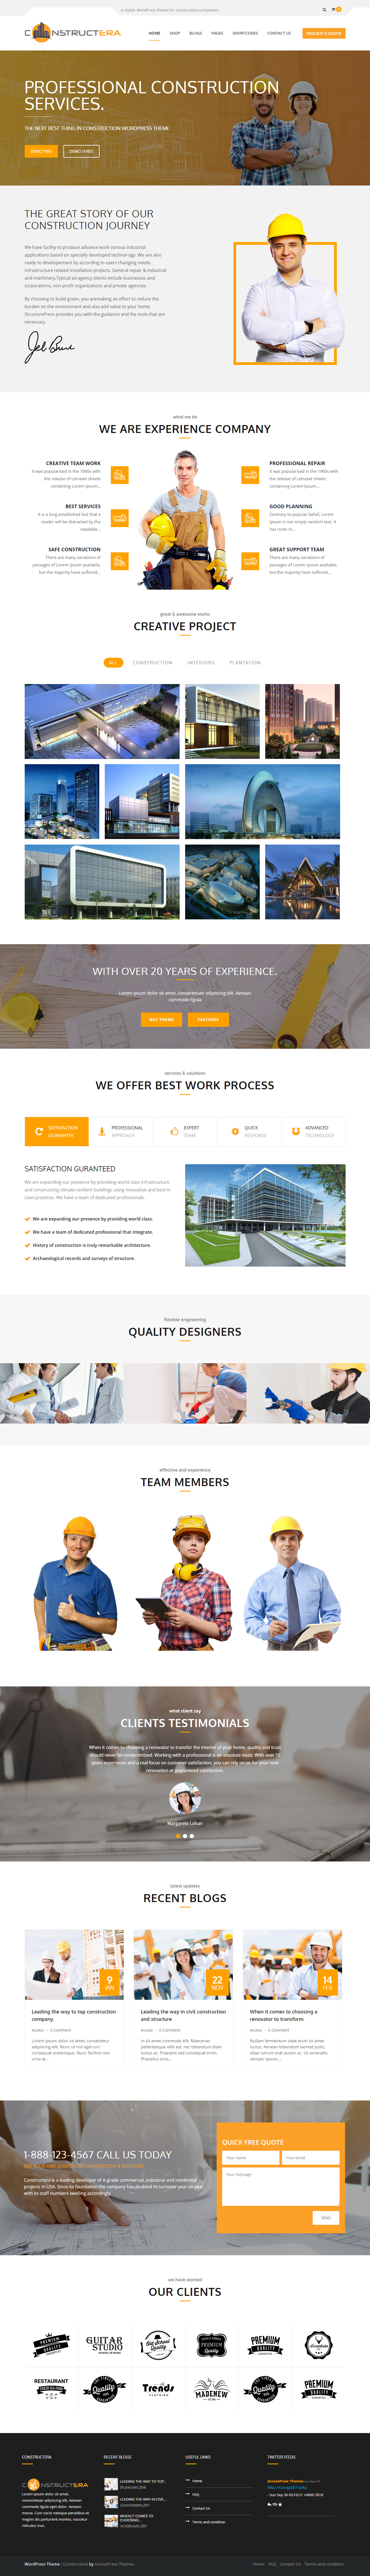 Constructera - Best Premium Construction Business Company WordPress Themes and Templates